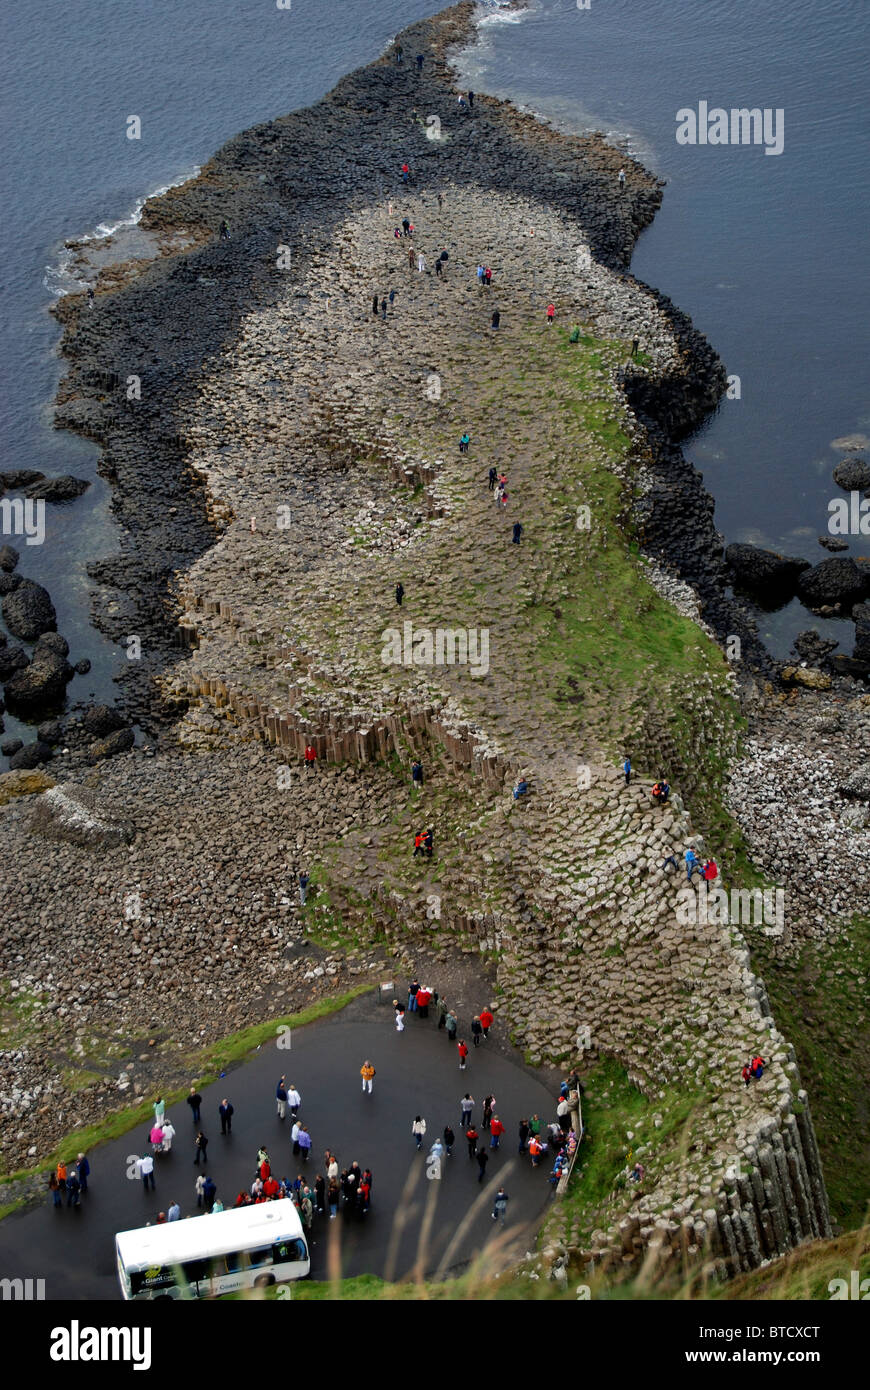 view of the Giants Causeway, County Antrim, Northern Ireland - Stock Image